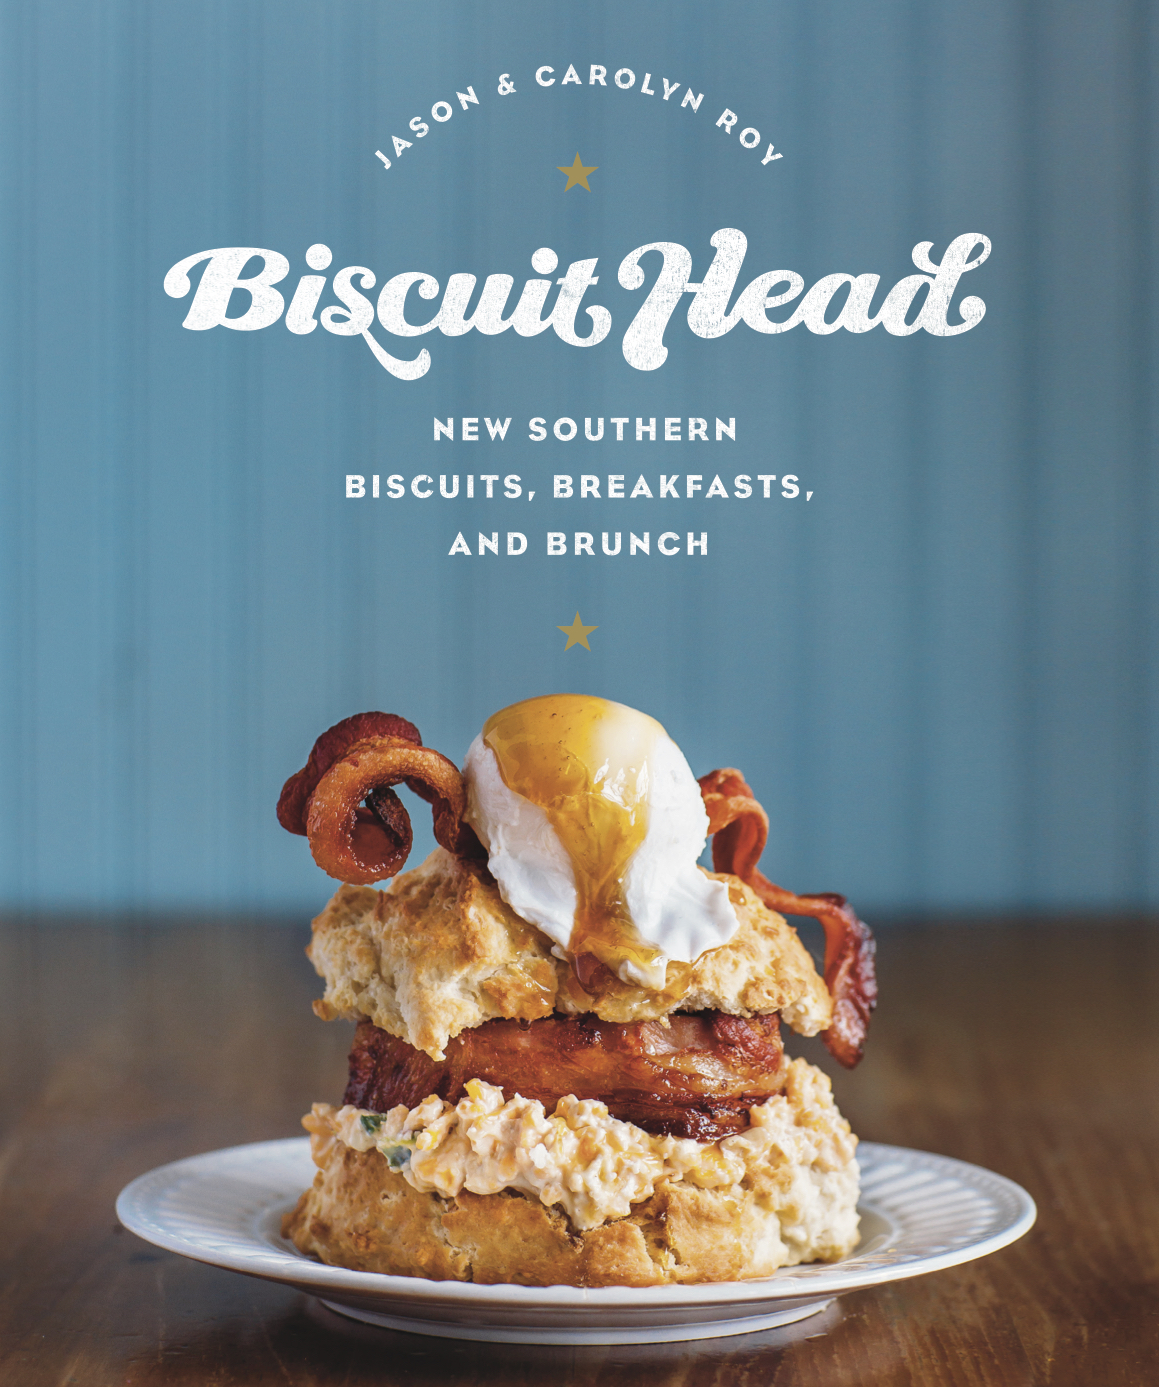 For more recipes from Biscuit Head, you can purchase their cookbook. (Photo credit:  Tim Robison Creative)